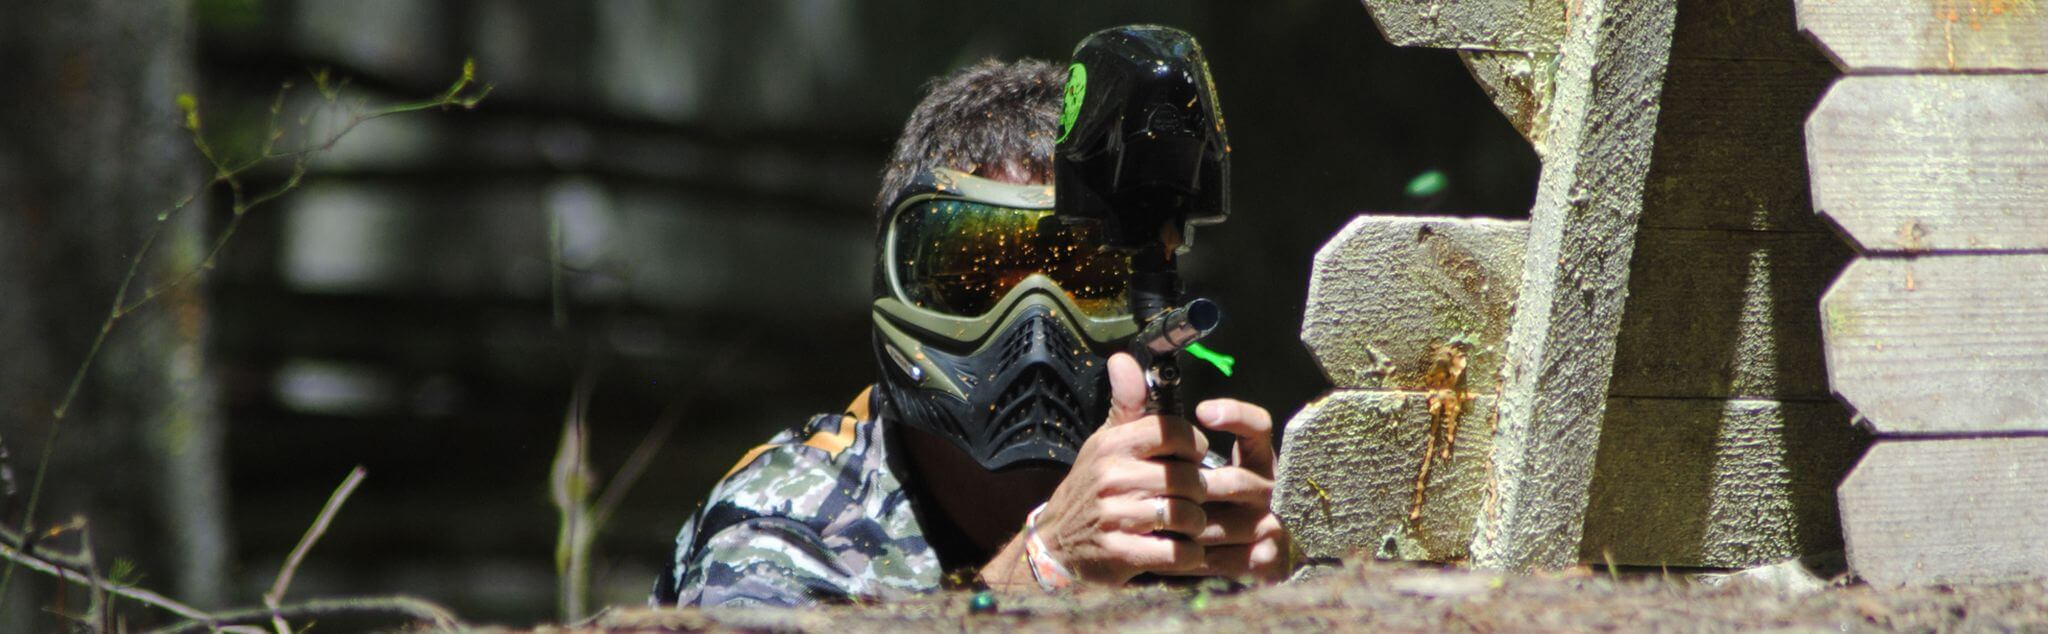 Paintball en Calp/calpe